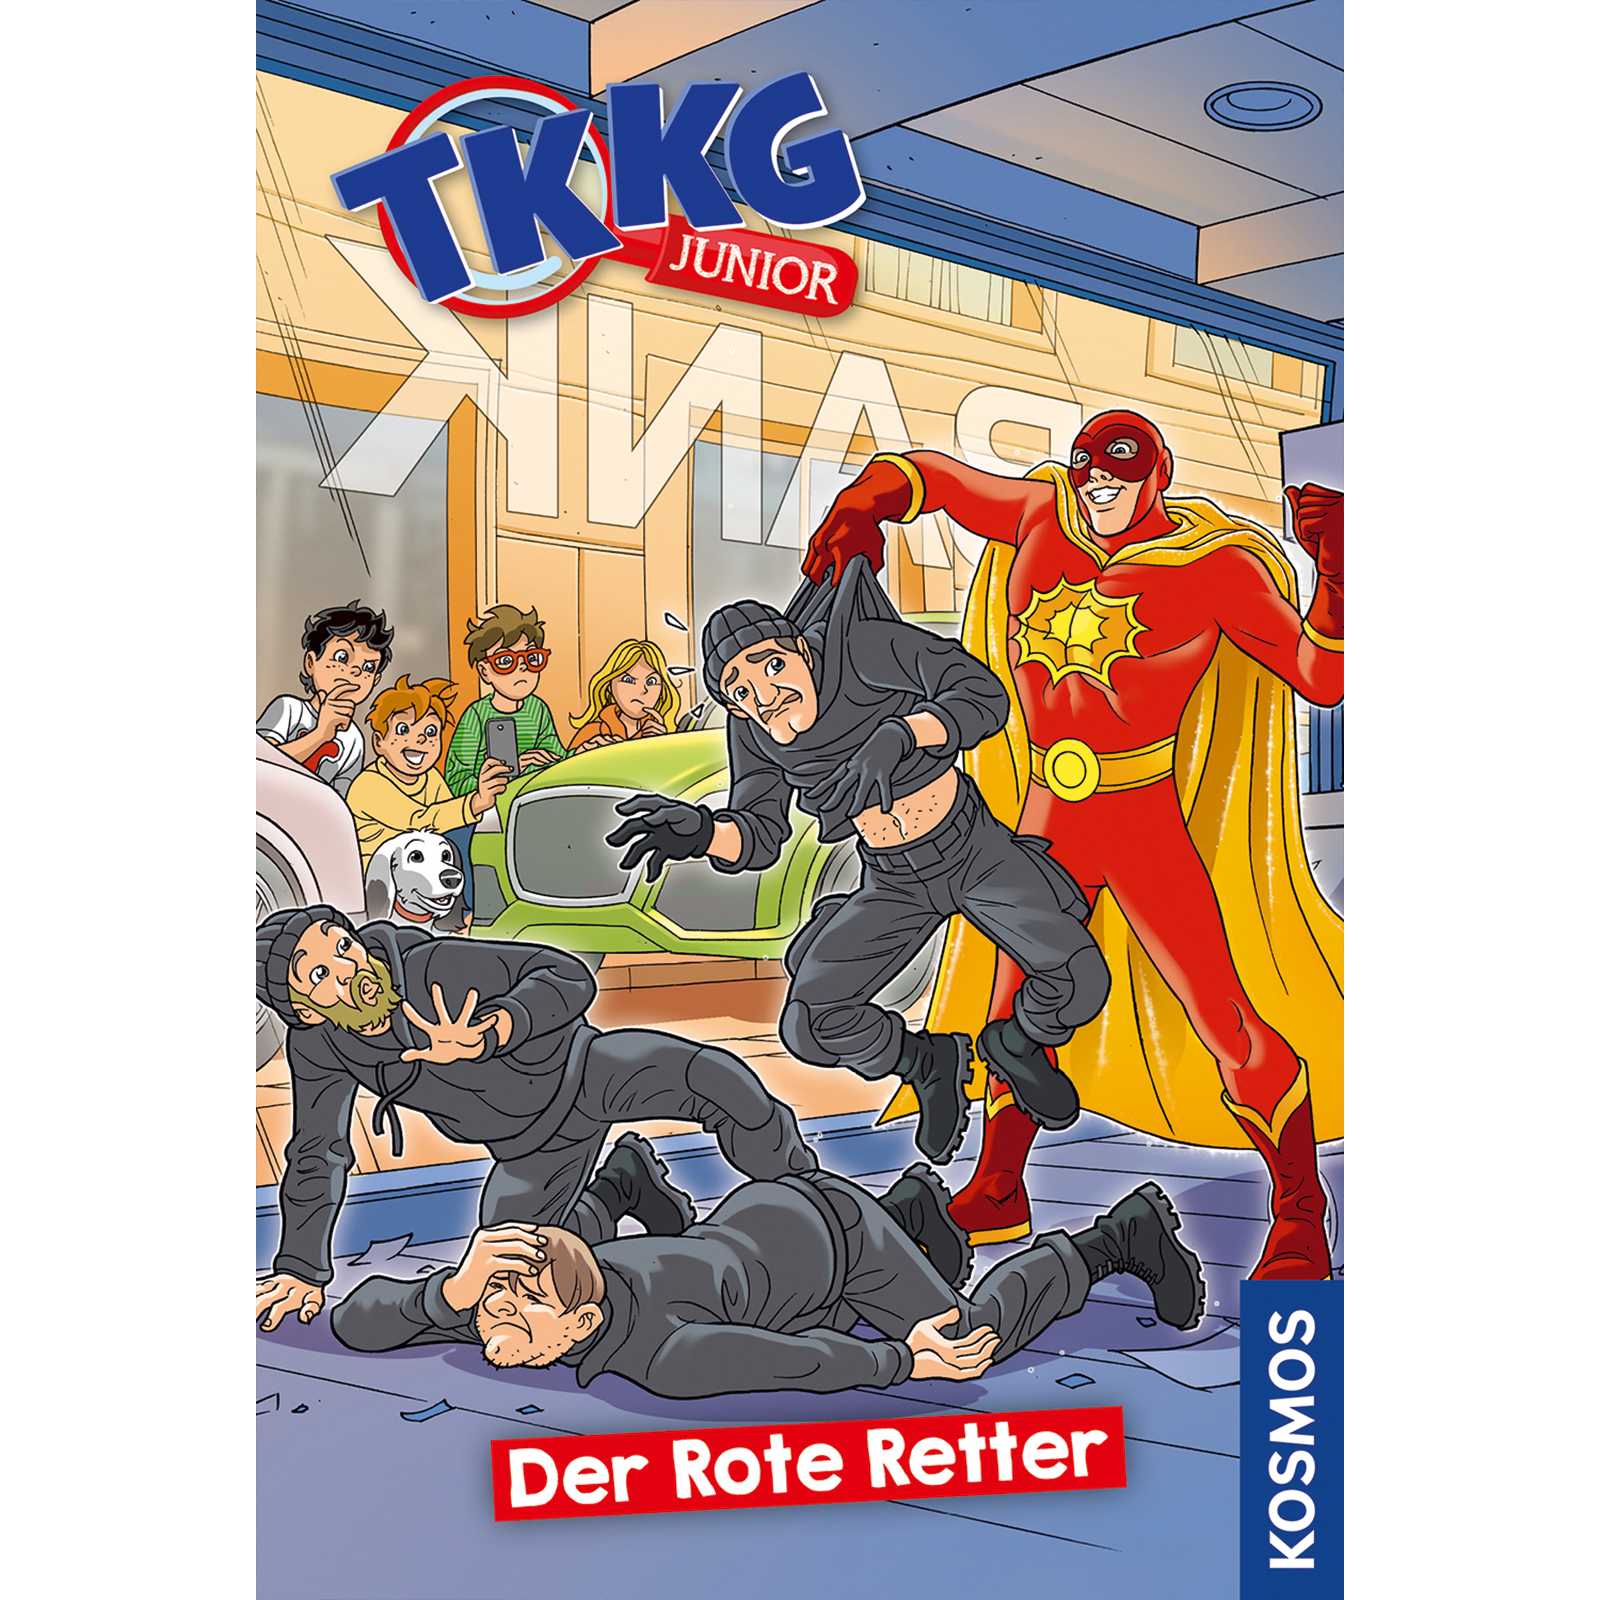 TKKG Junior - TKKG Junior - Der Rote Retter